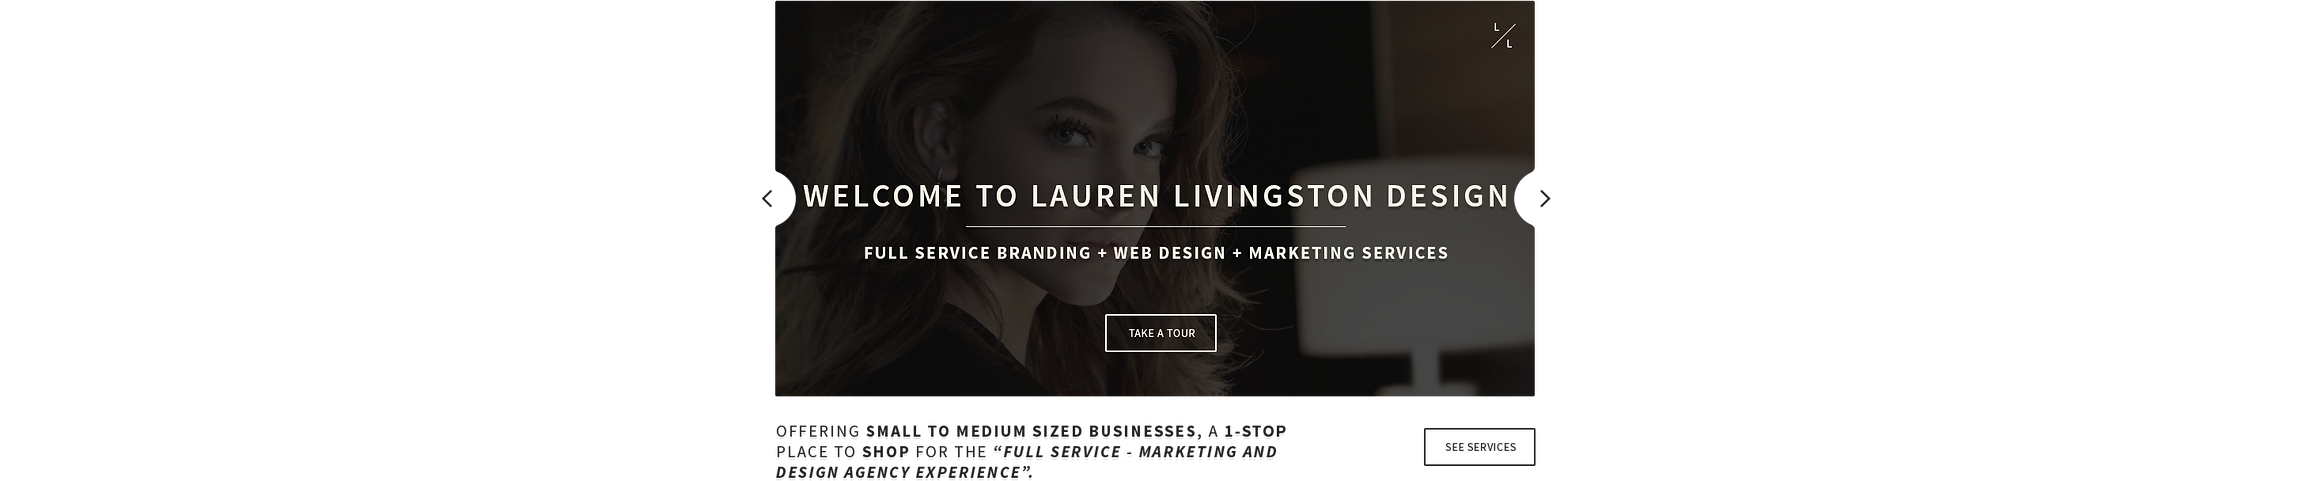 "Offering Small to Medium Sized Businesses, a 1-Stop Place to Shop for the ""full service marketing and design agency experience"""